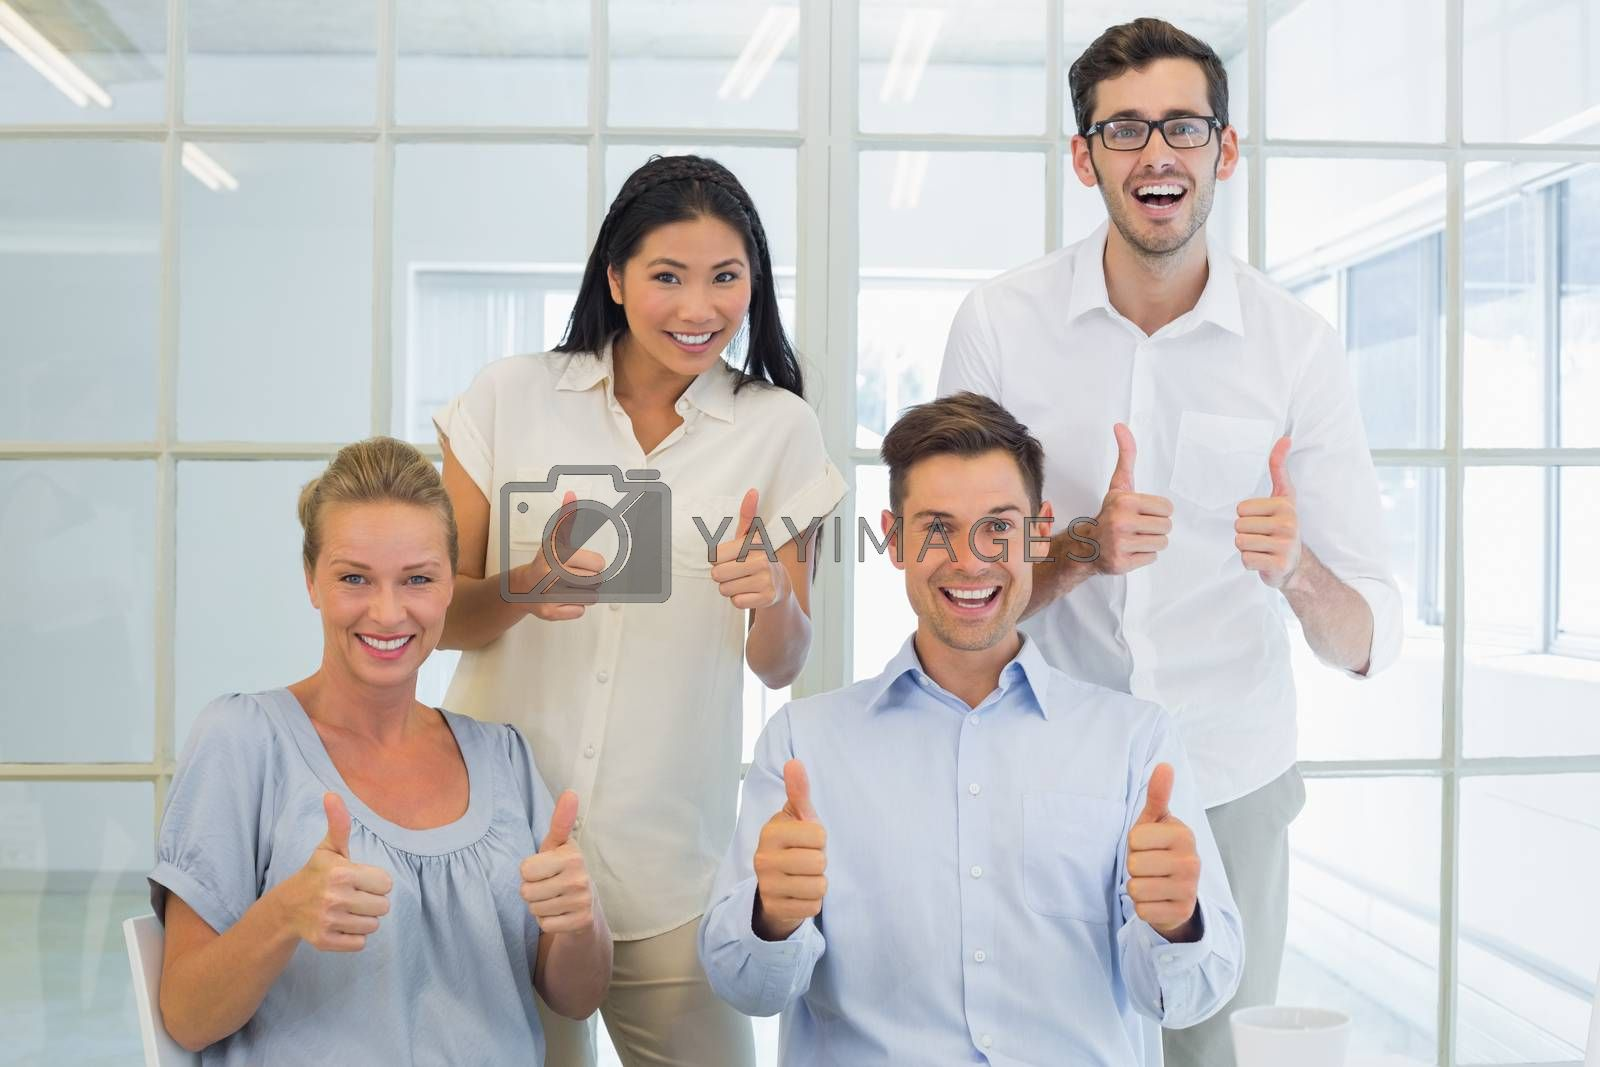 Royalty free image of Casual business team showing thumbs up to camera by Wavebreakmedia